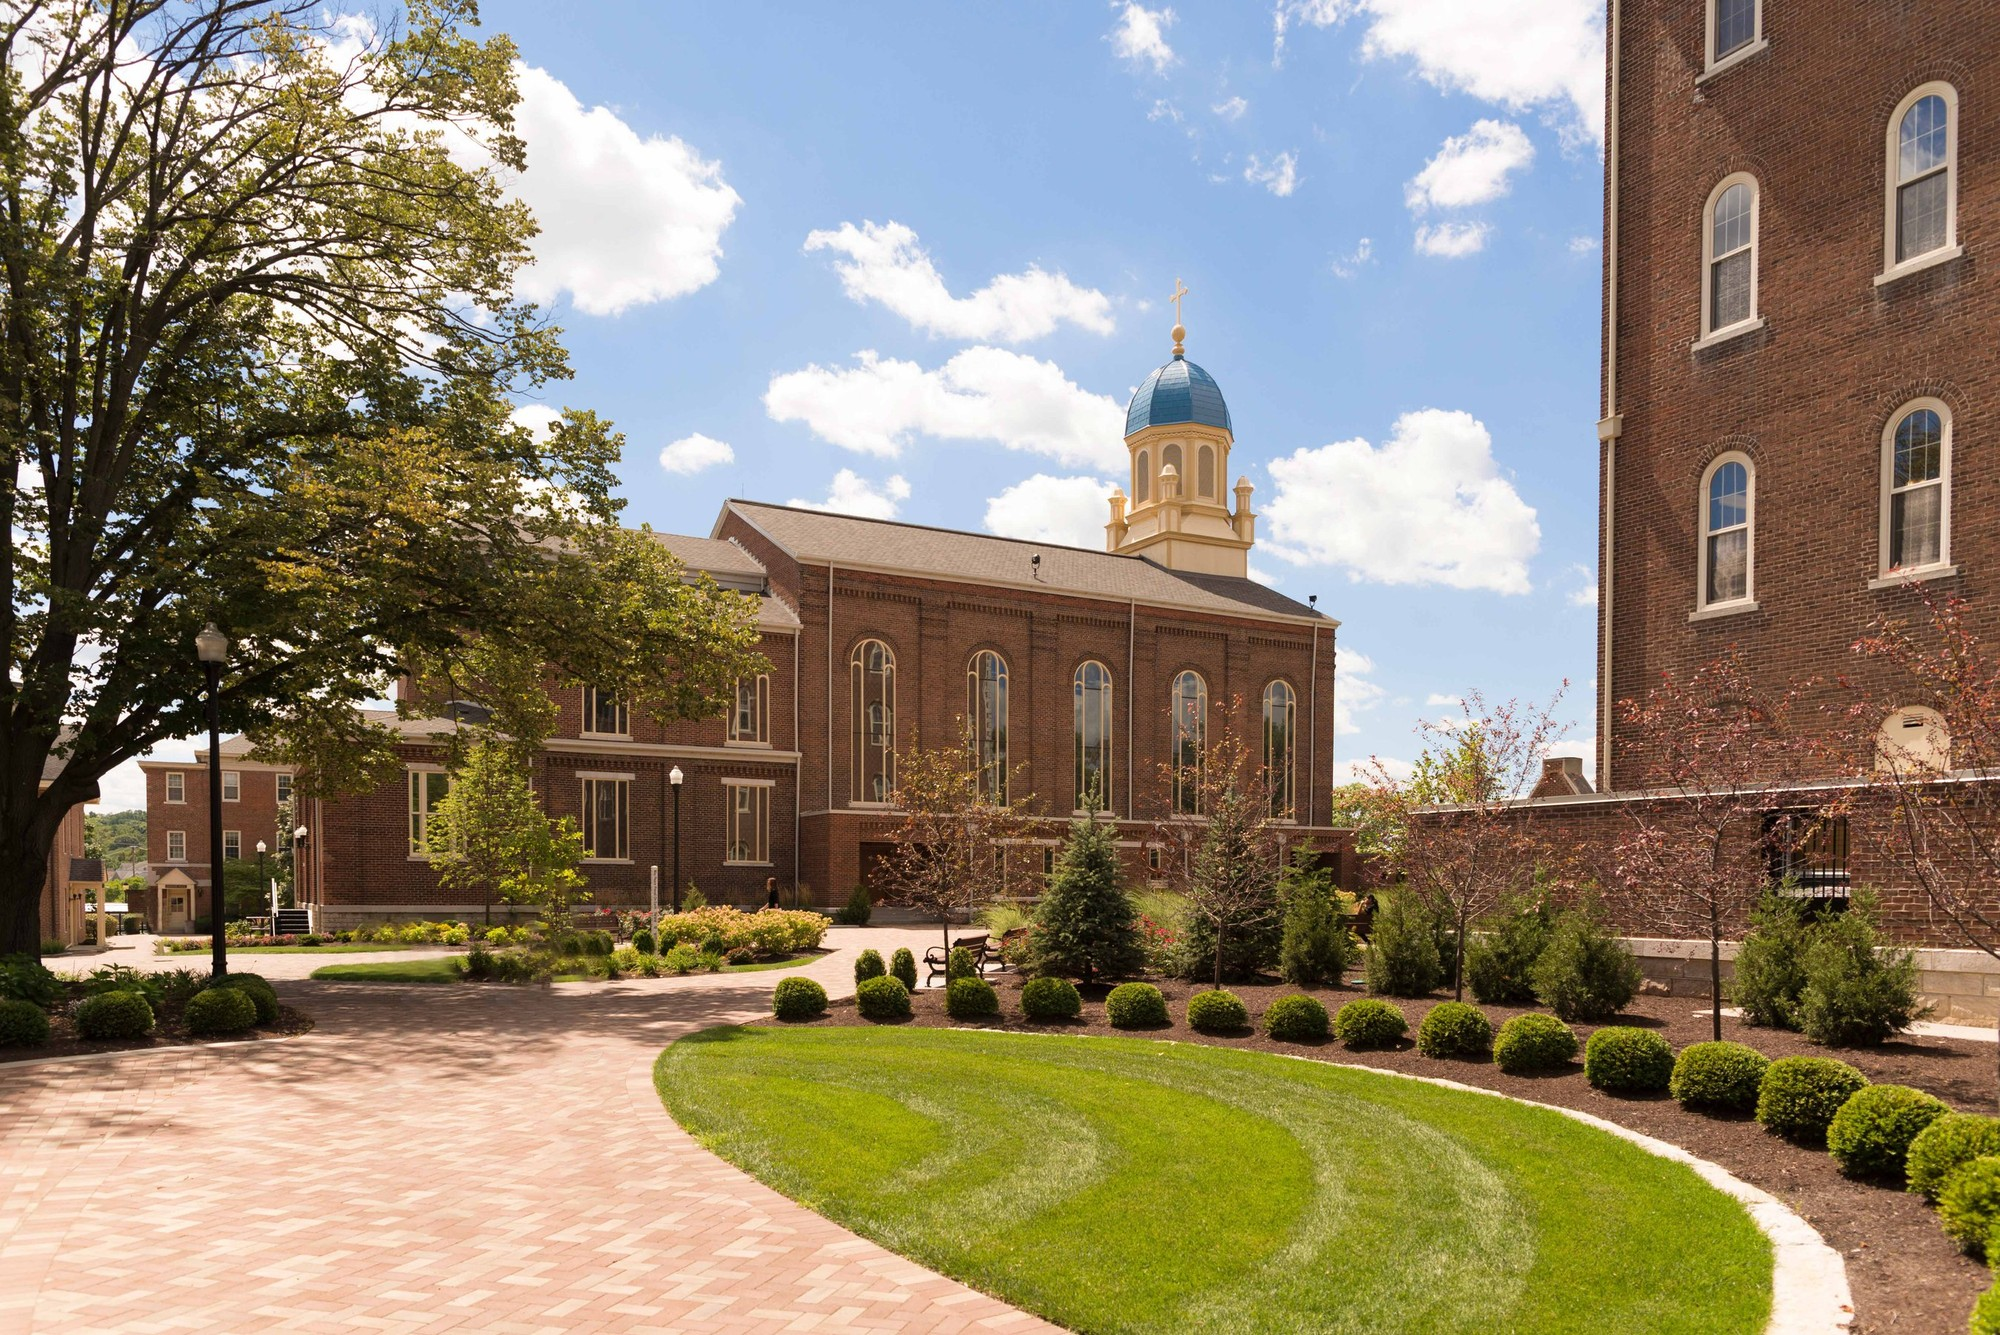 A side view of the Chapel of the Immaculate Conception from a courtyard on the Dayton University campus